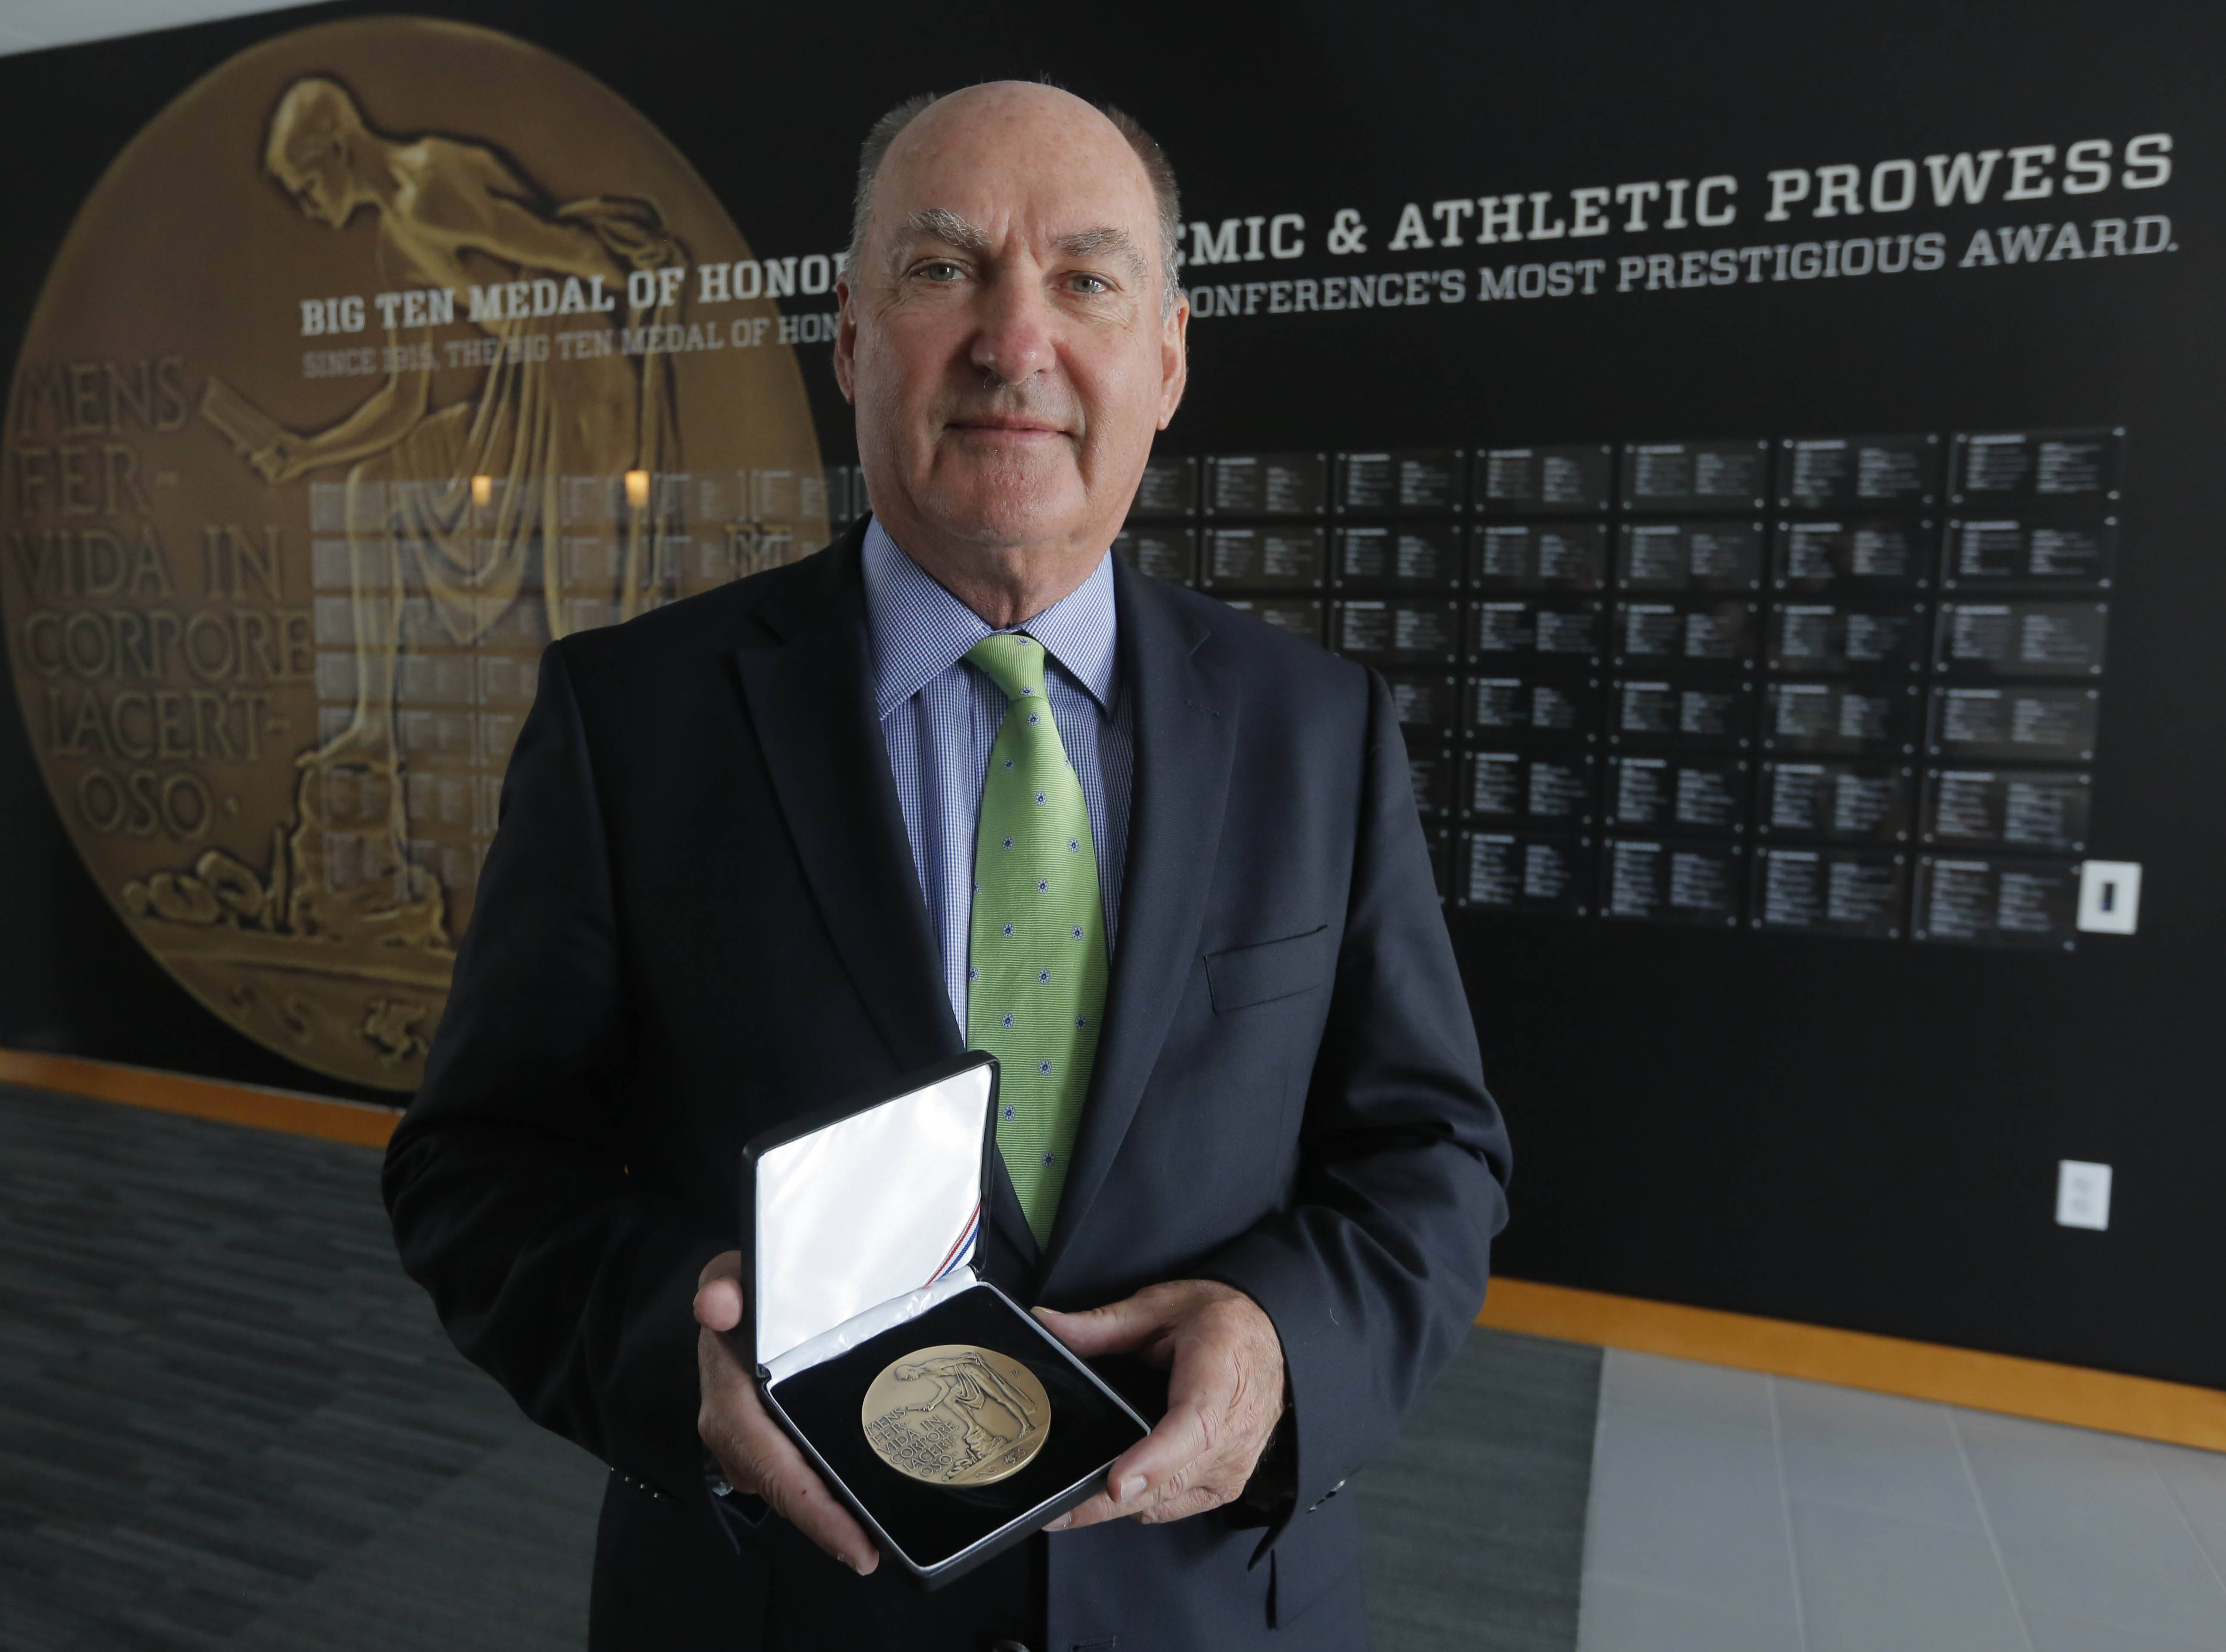 Big Ten commissioner Jim Delany holding the Big Ten Medal of Honor that is exhibited in the The Big Ten Experience at the Big Ten conference's sparkling new headquarters in Rosemont. This year marks the 100th anniversary of the Big Ten Medal of Honor given to one male and female from each school based on their accomplishments on the field and in the classroom, and they are recognized here.